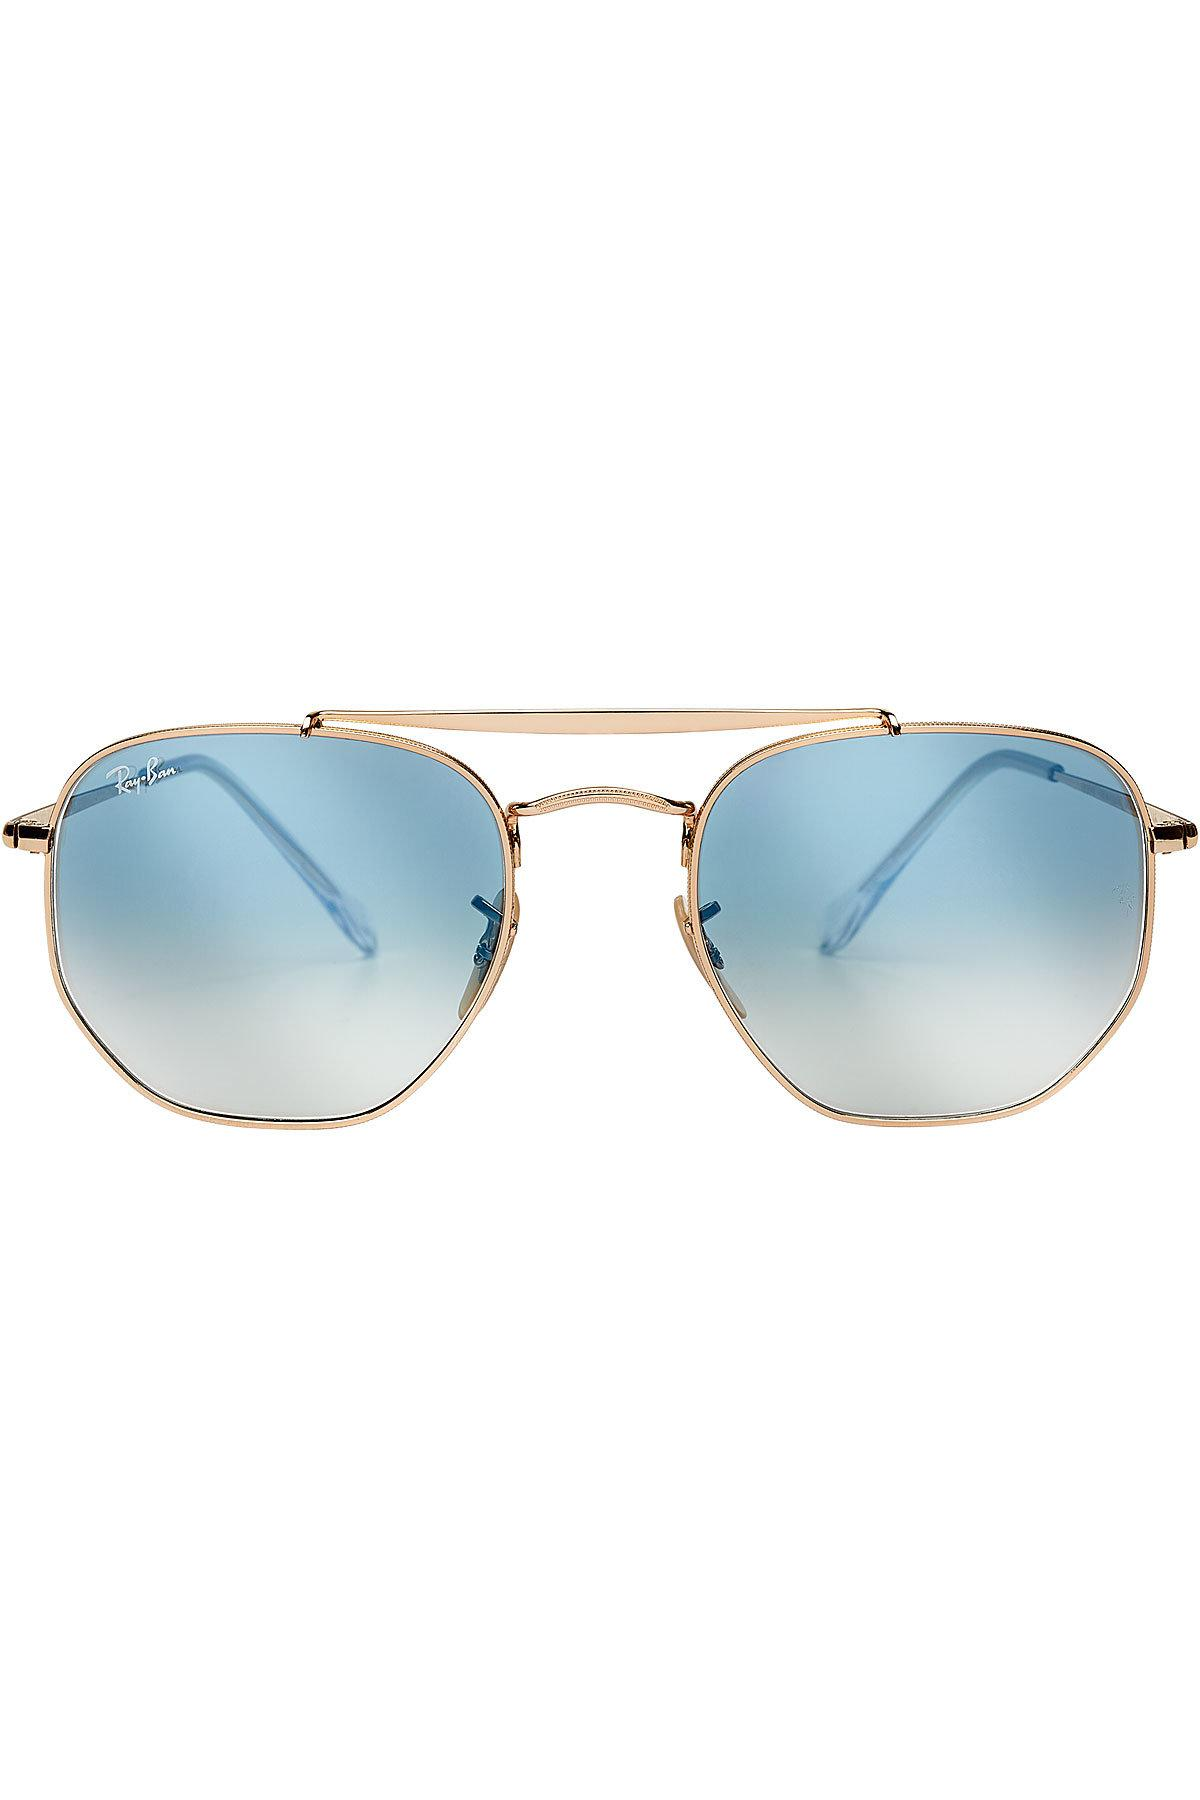 3026fef460 Ray-Ban The Marshall Hexagonal Sunglasses in Blue - Lyst